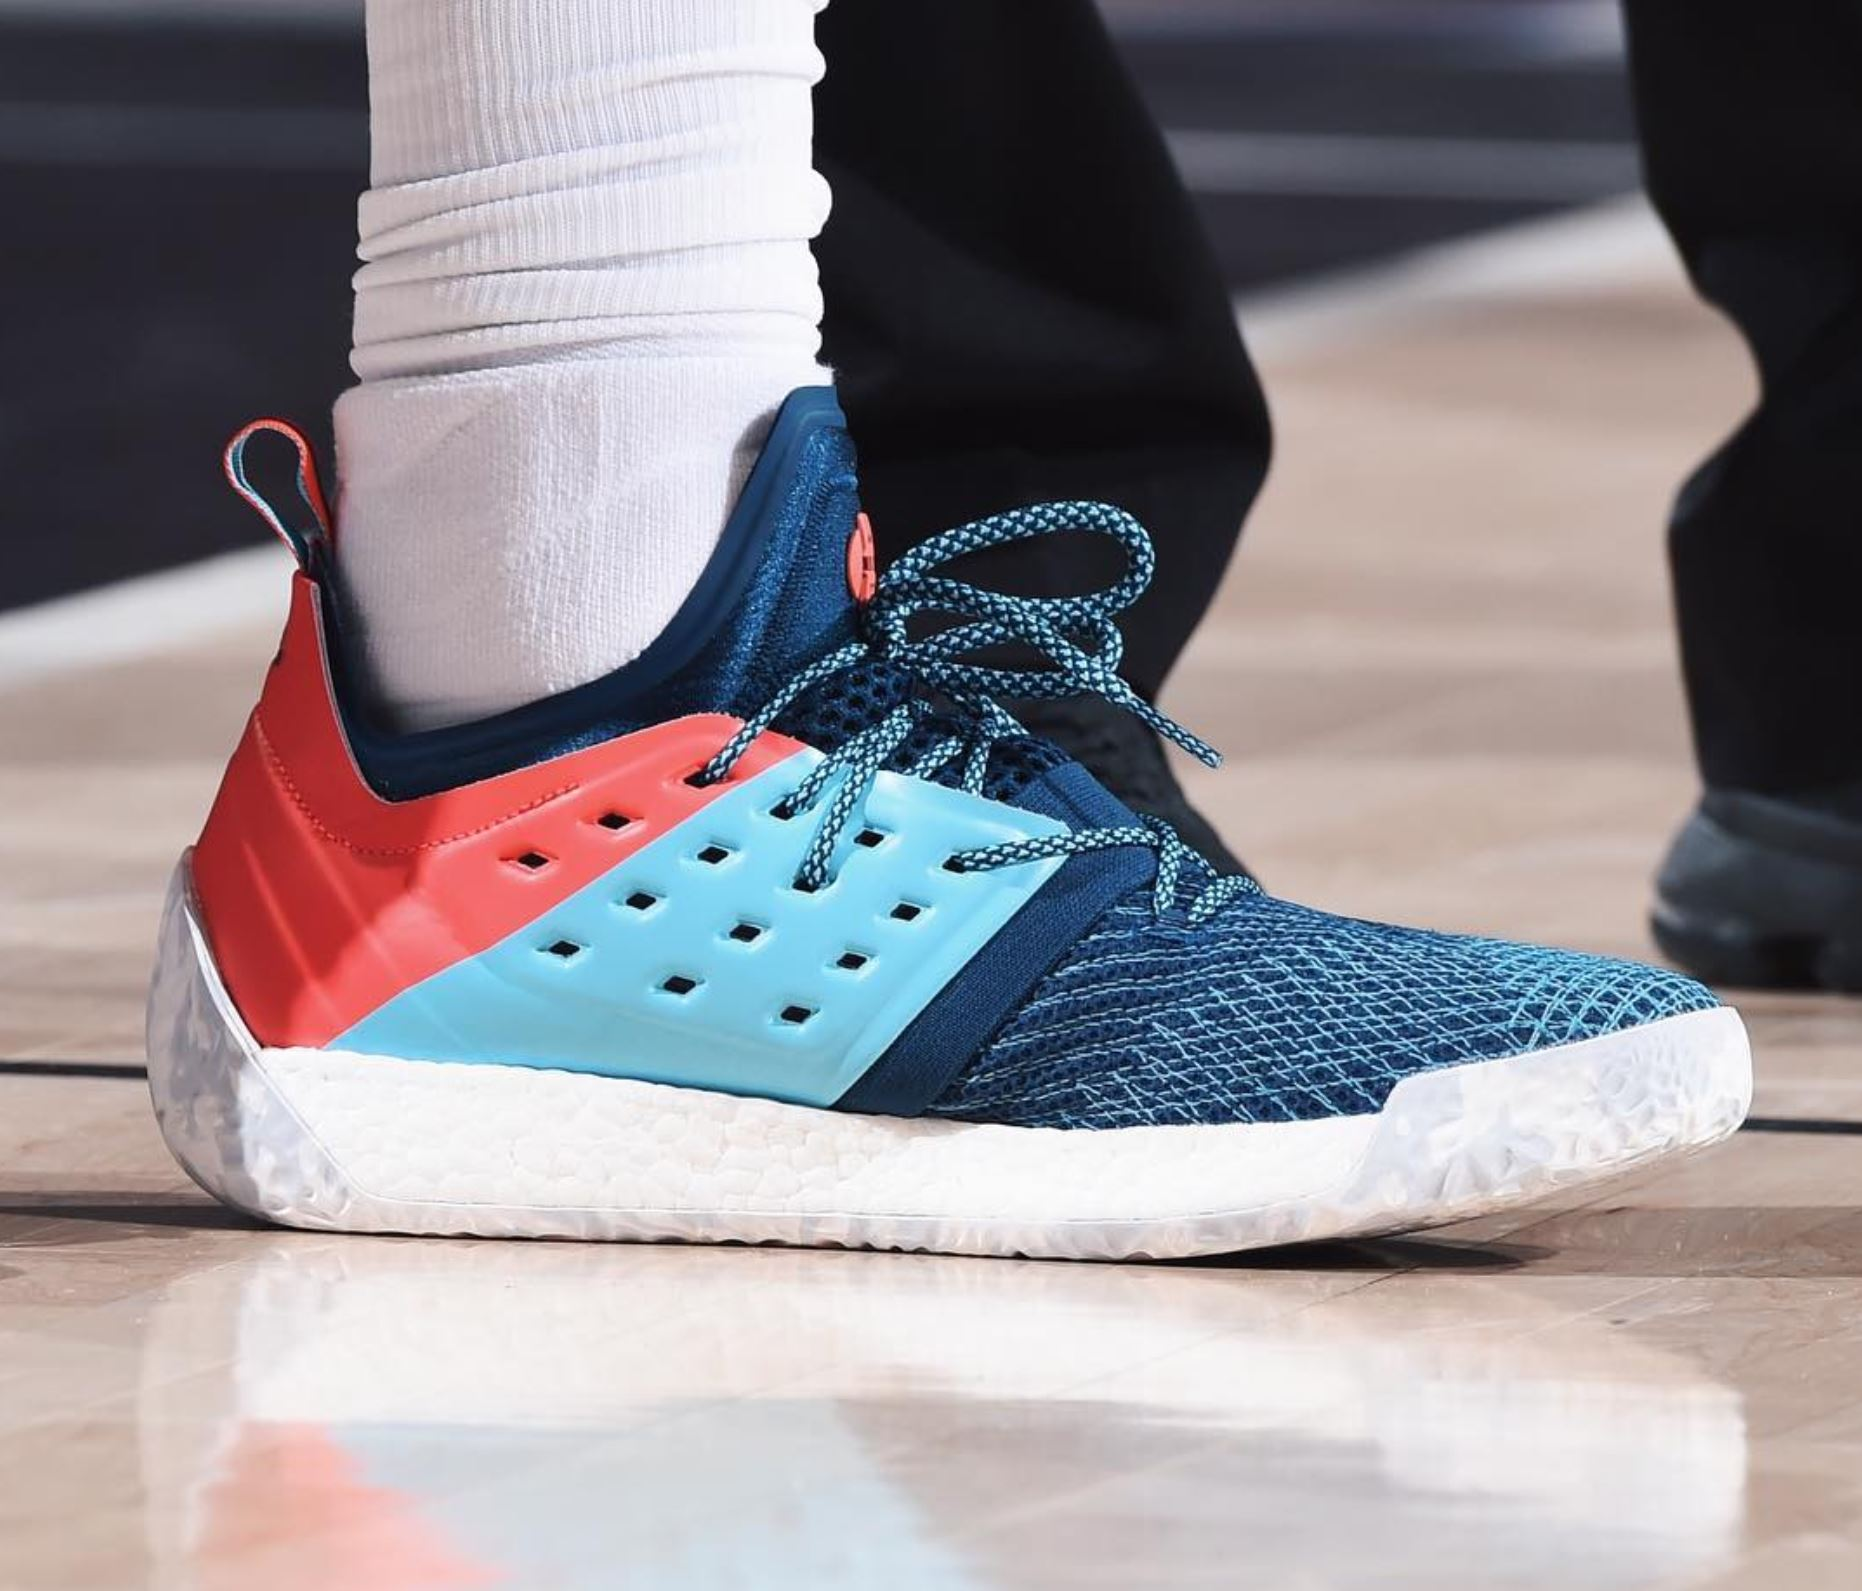 James Harden Shoes Vol 2: Look For This Adidas Harden Vol 2 Colorway Next Month At